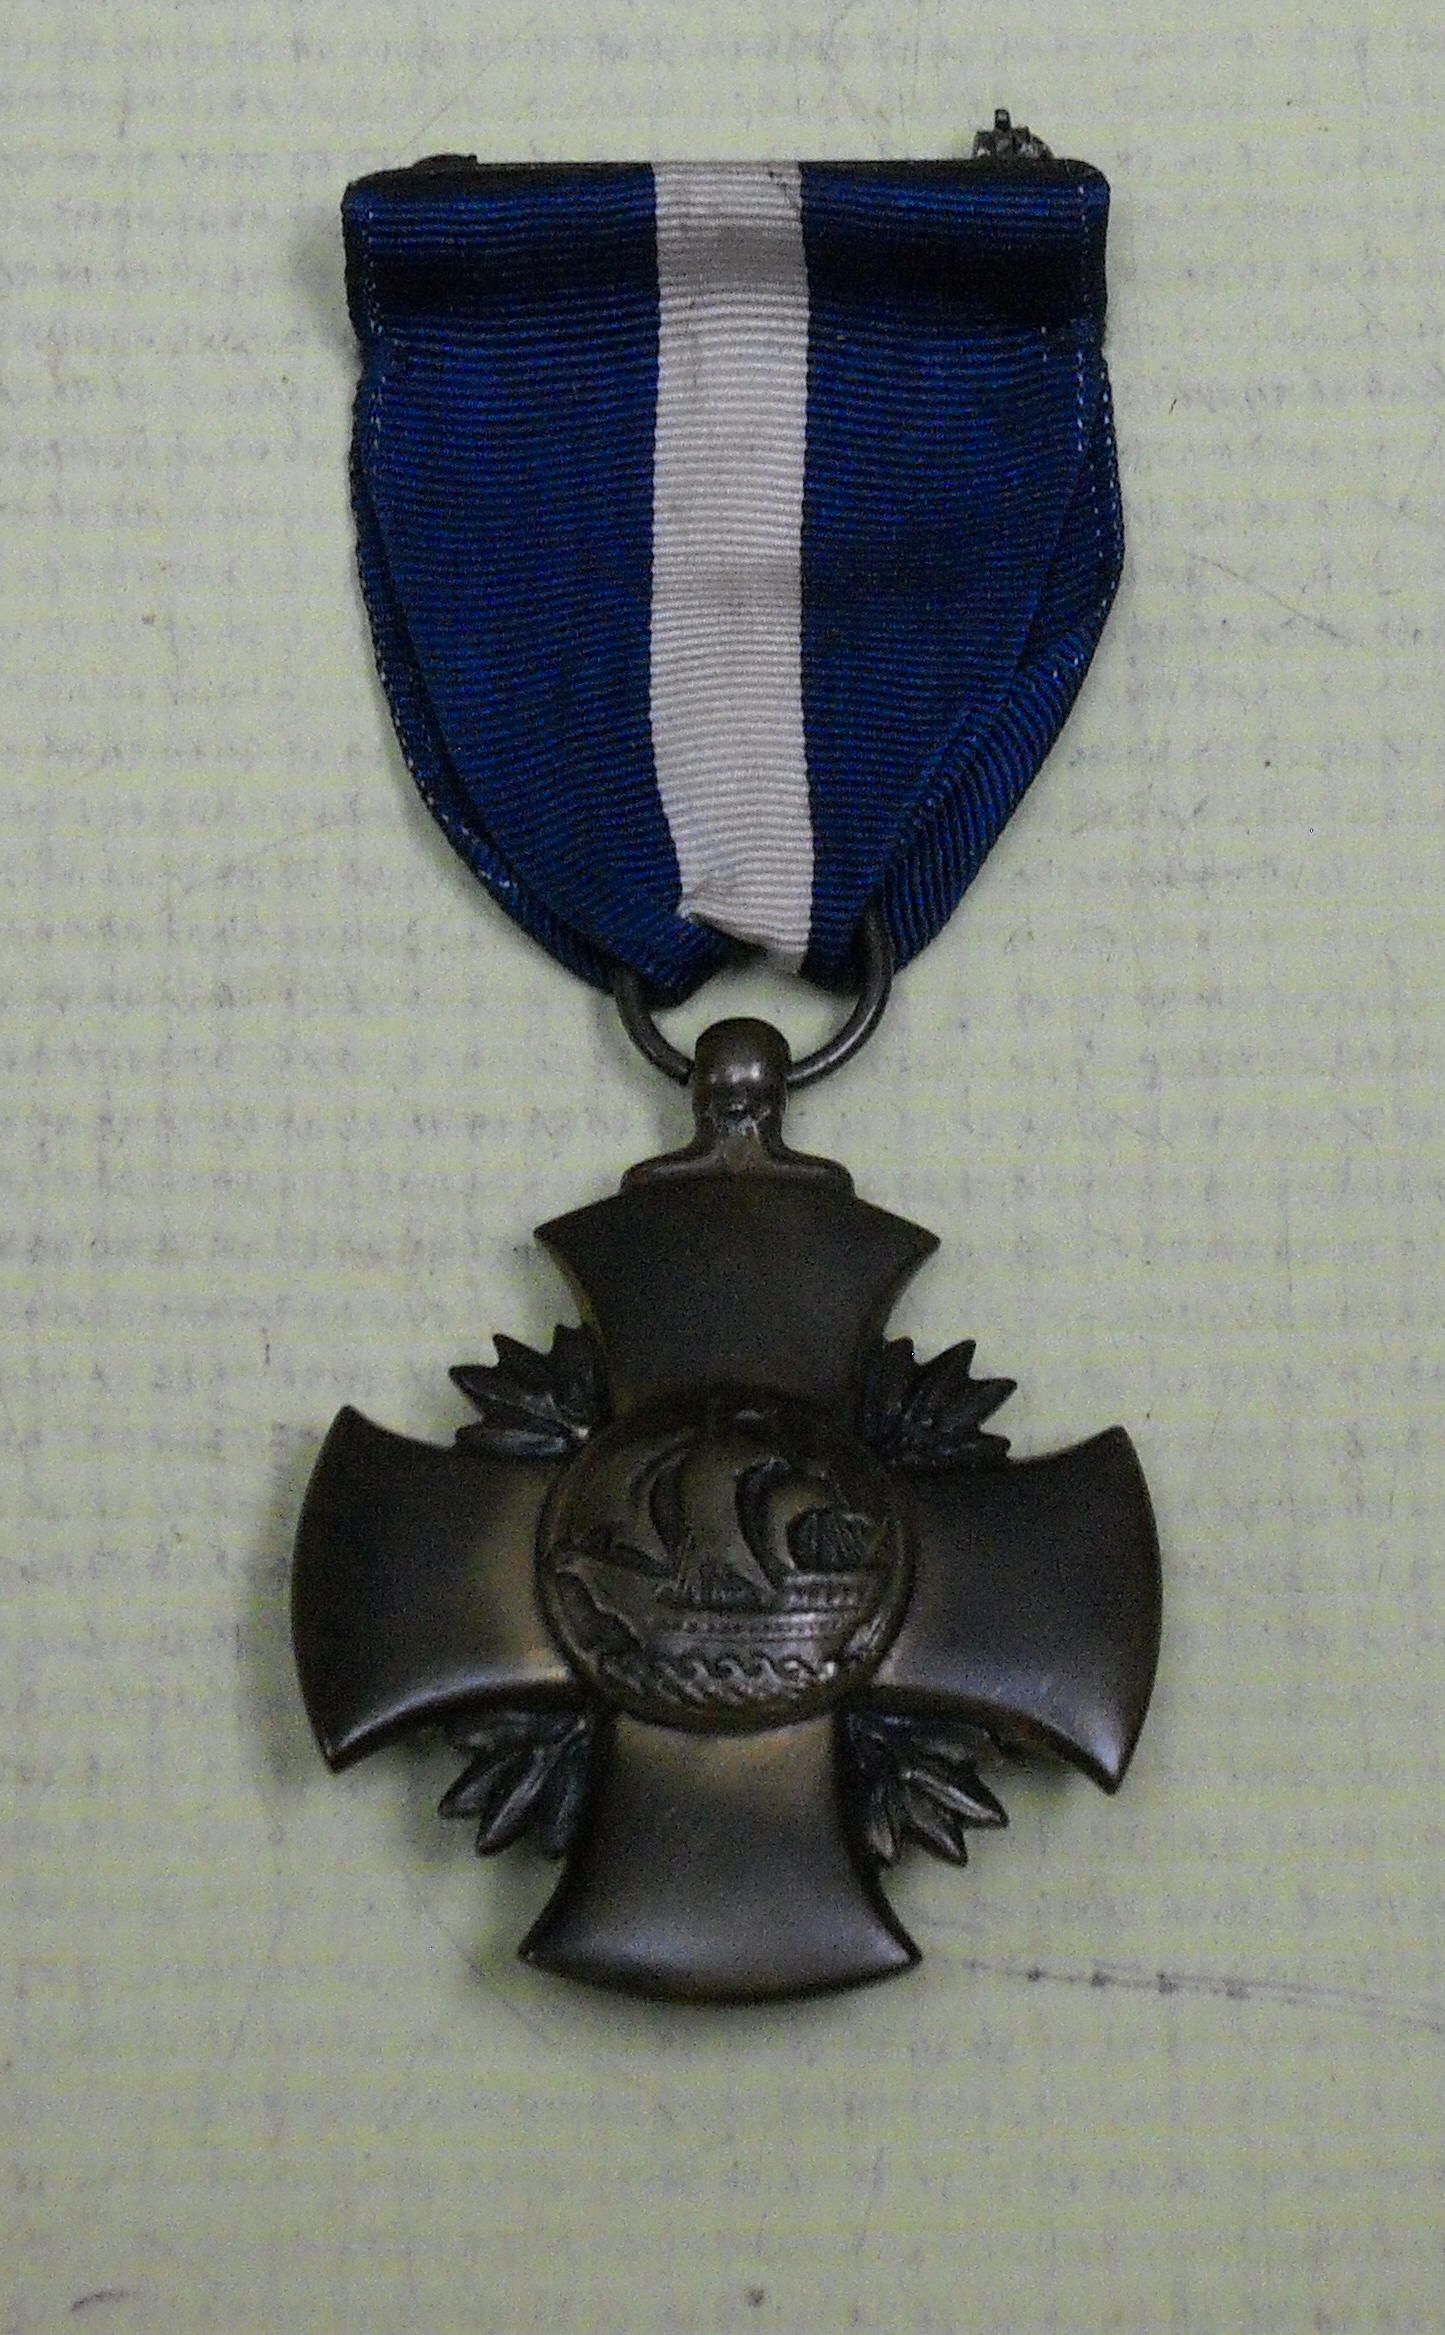 US Distinguished Service Cross Navy (with rare WWII